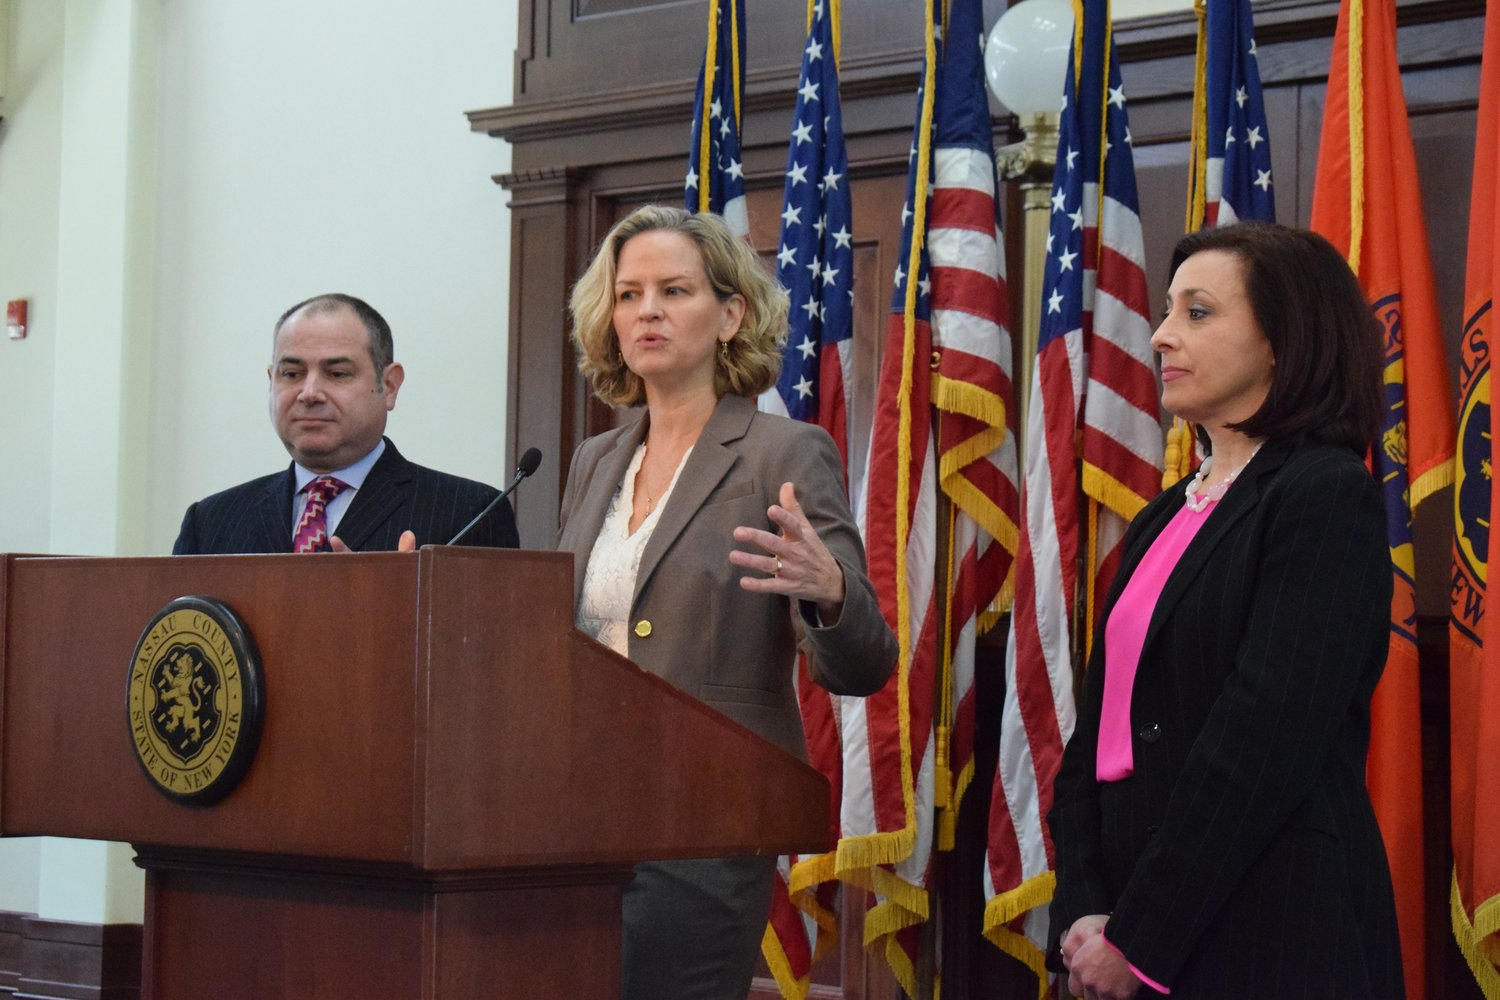 Nassau County Executive Laura Curran announced that Ana Sousa, right, the director of audits and grants in the Office of Management and Budget, will lead a watchdog agency to oversee the county's assessment departments with Ray Orlando, the deputy executive for finance.